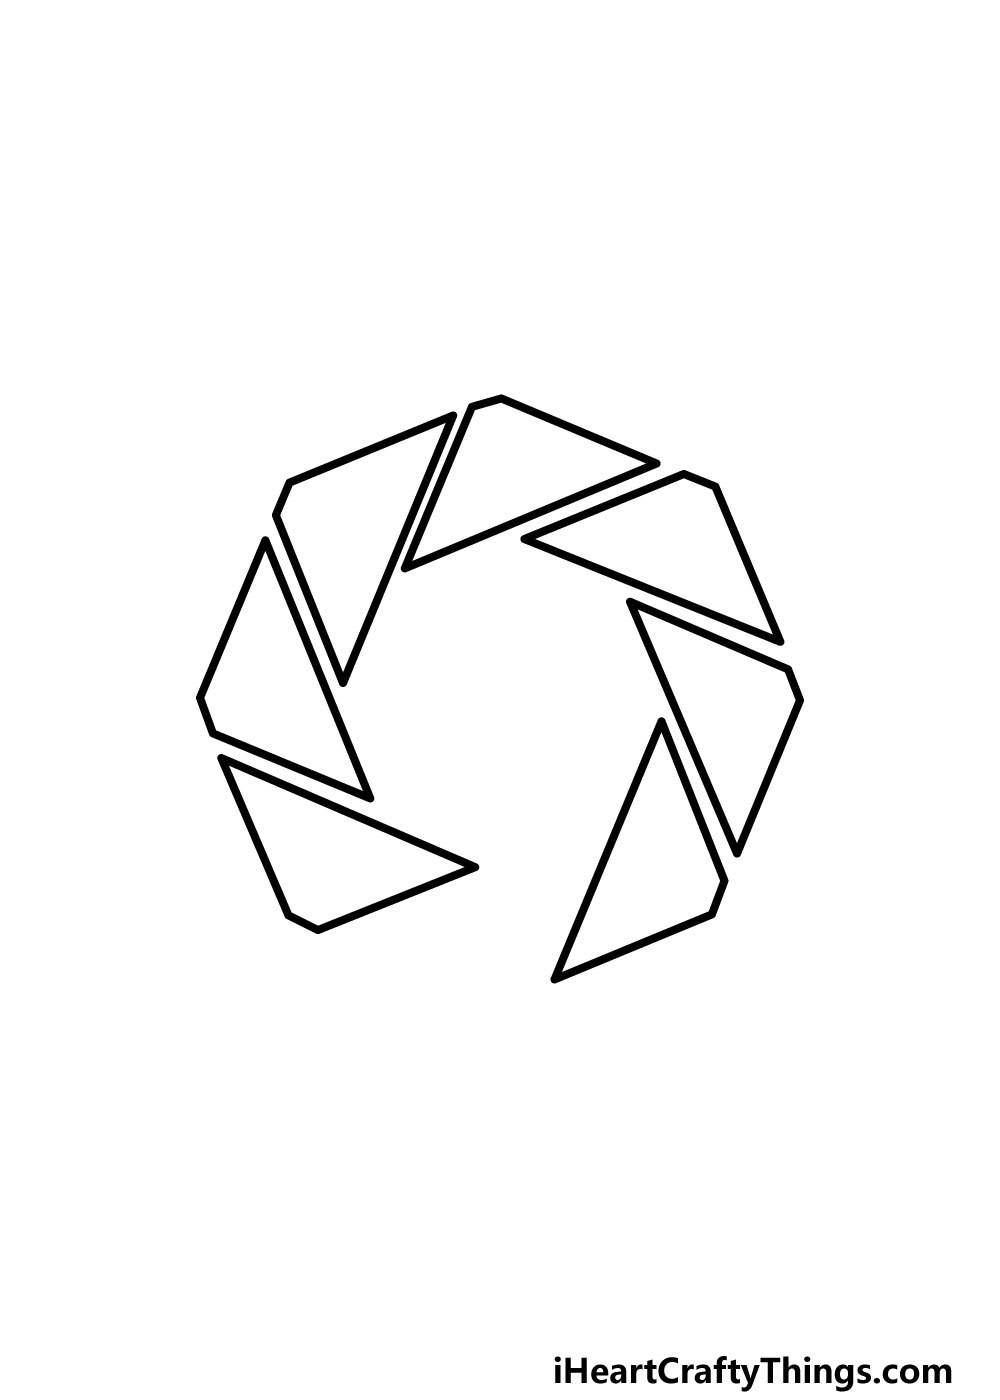 drawing an octagon step 4